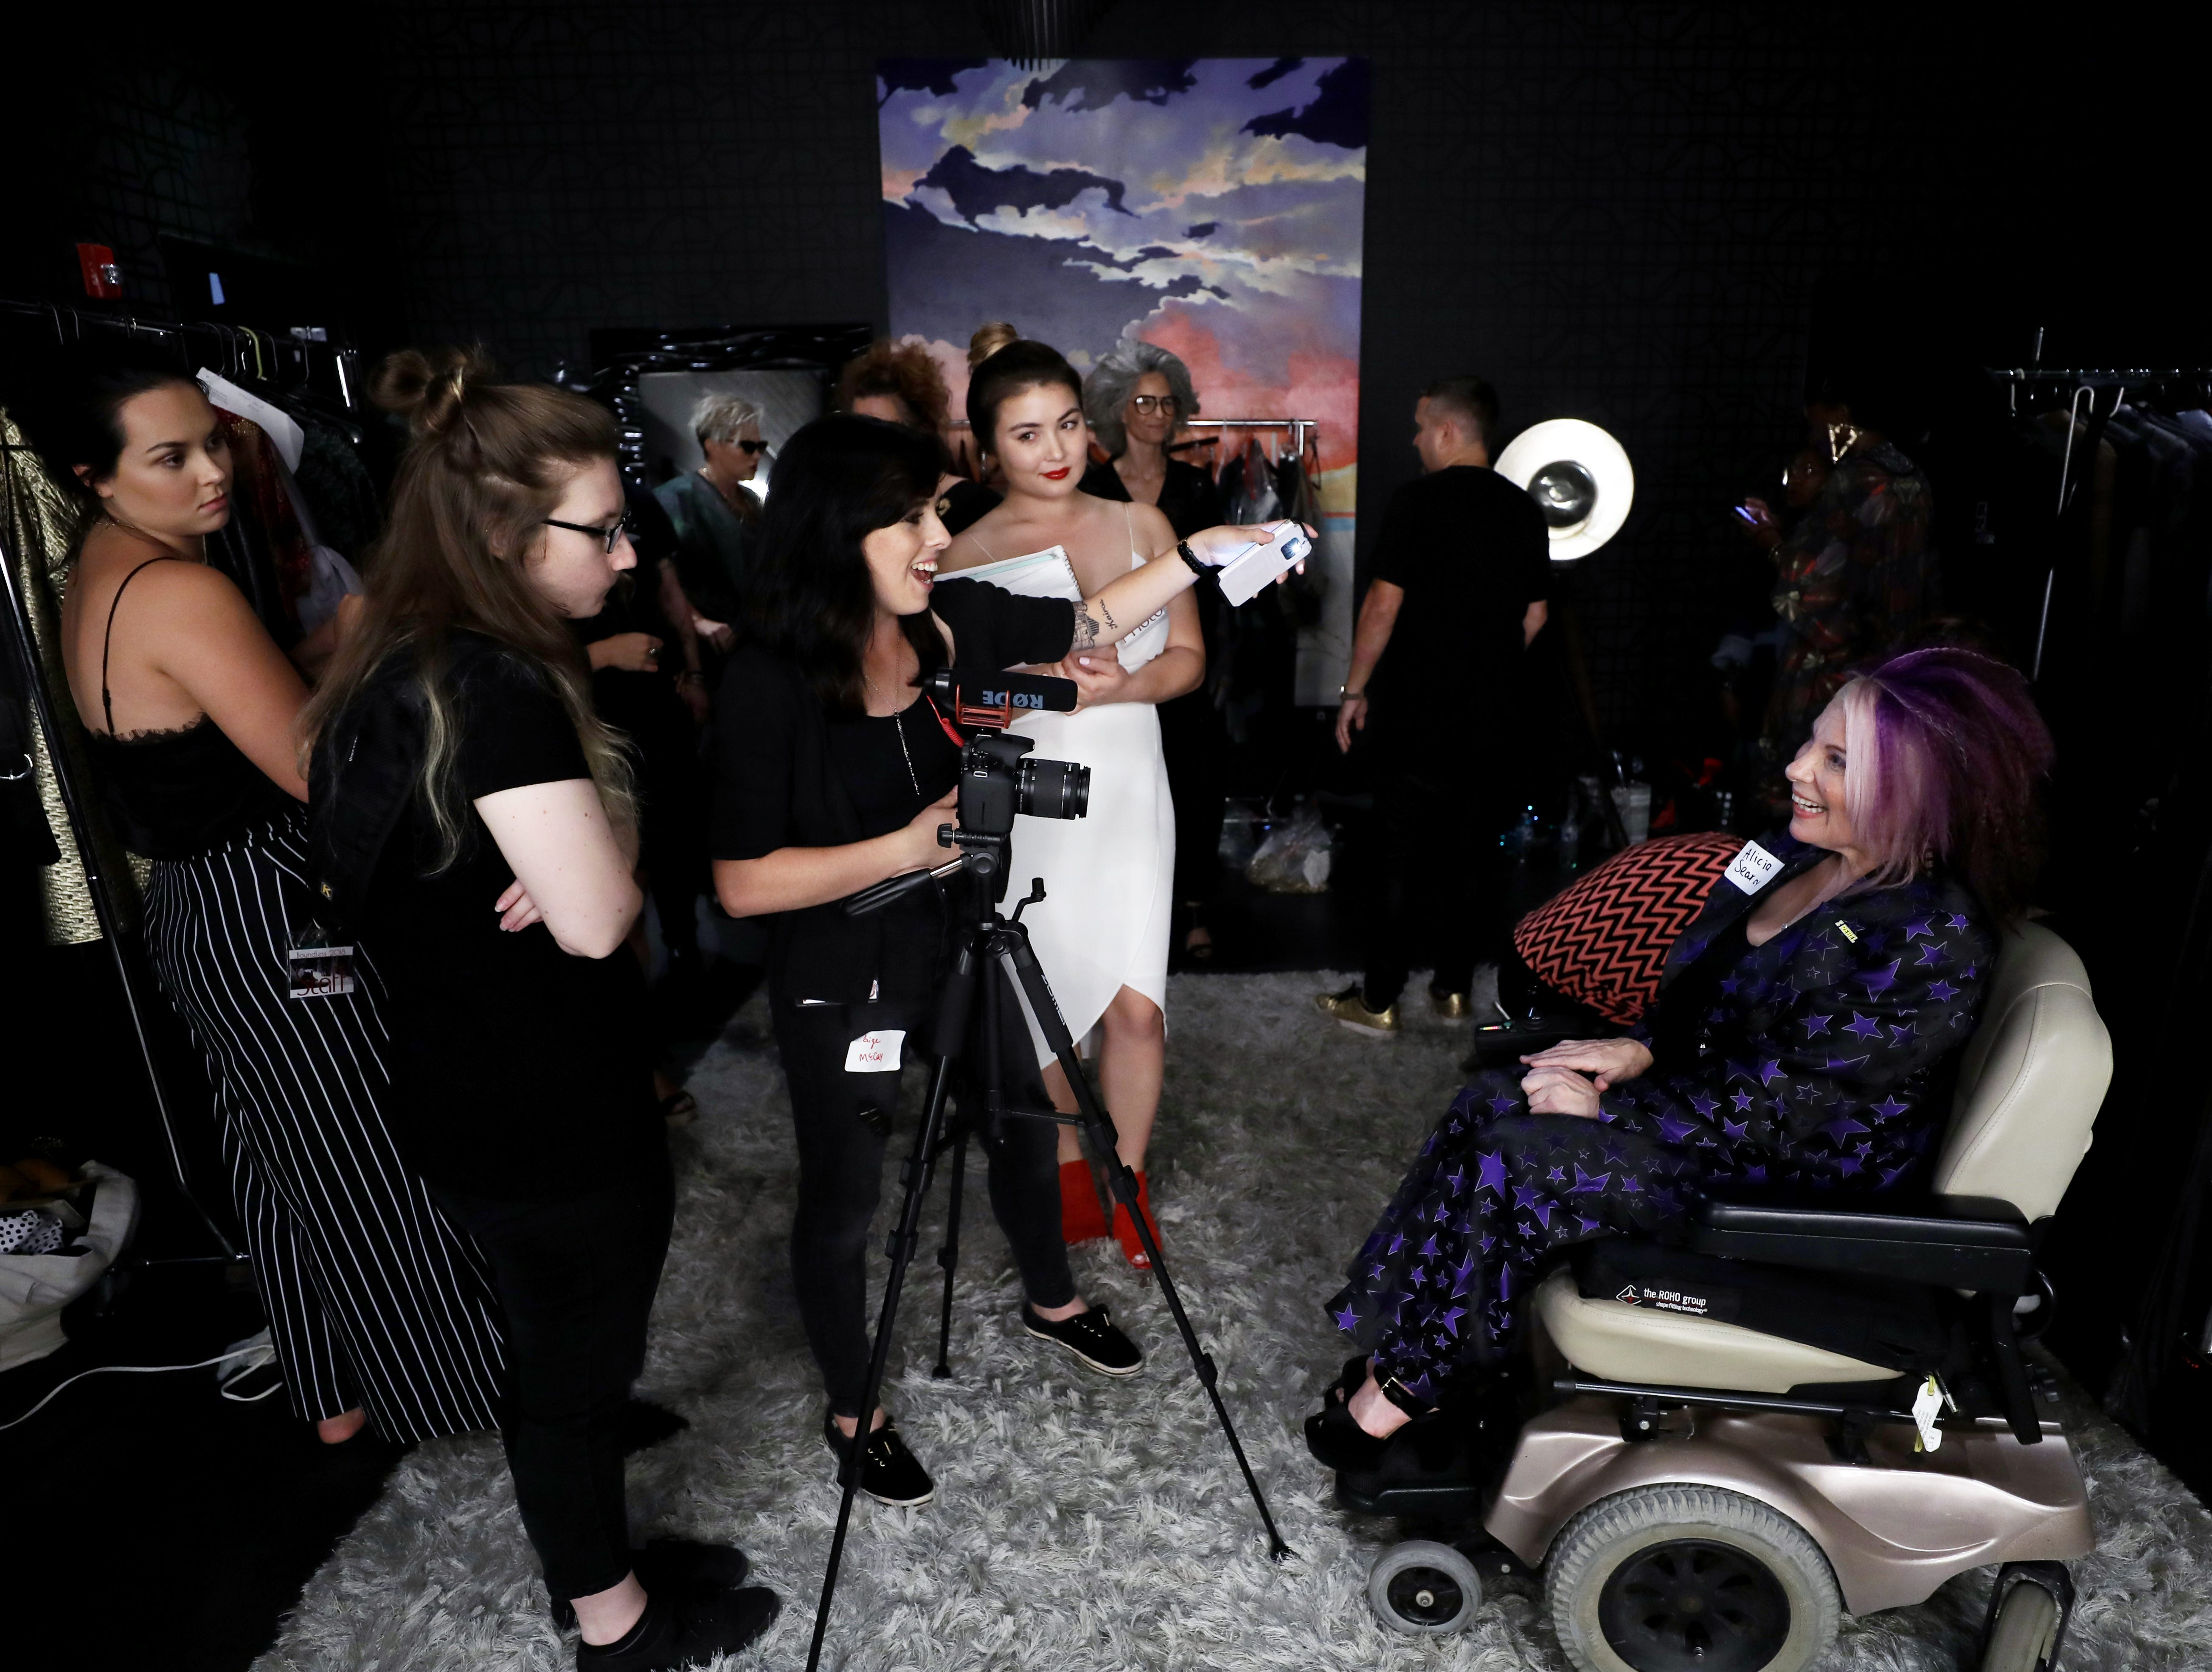 Alicia Searcy, right, organizer of the Boundless 2018 fashion show, is interviewed about the event at Studio 615 on Saturday, September 8, 2018.